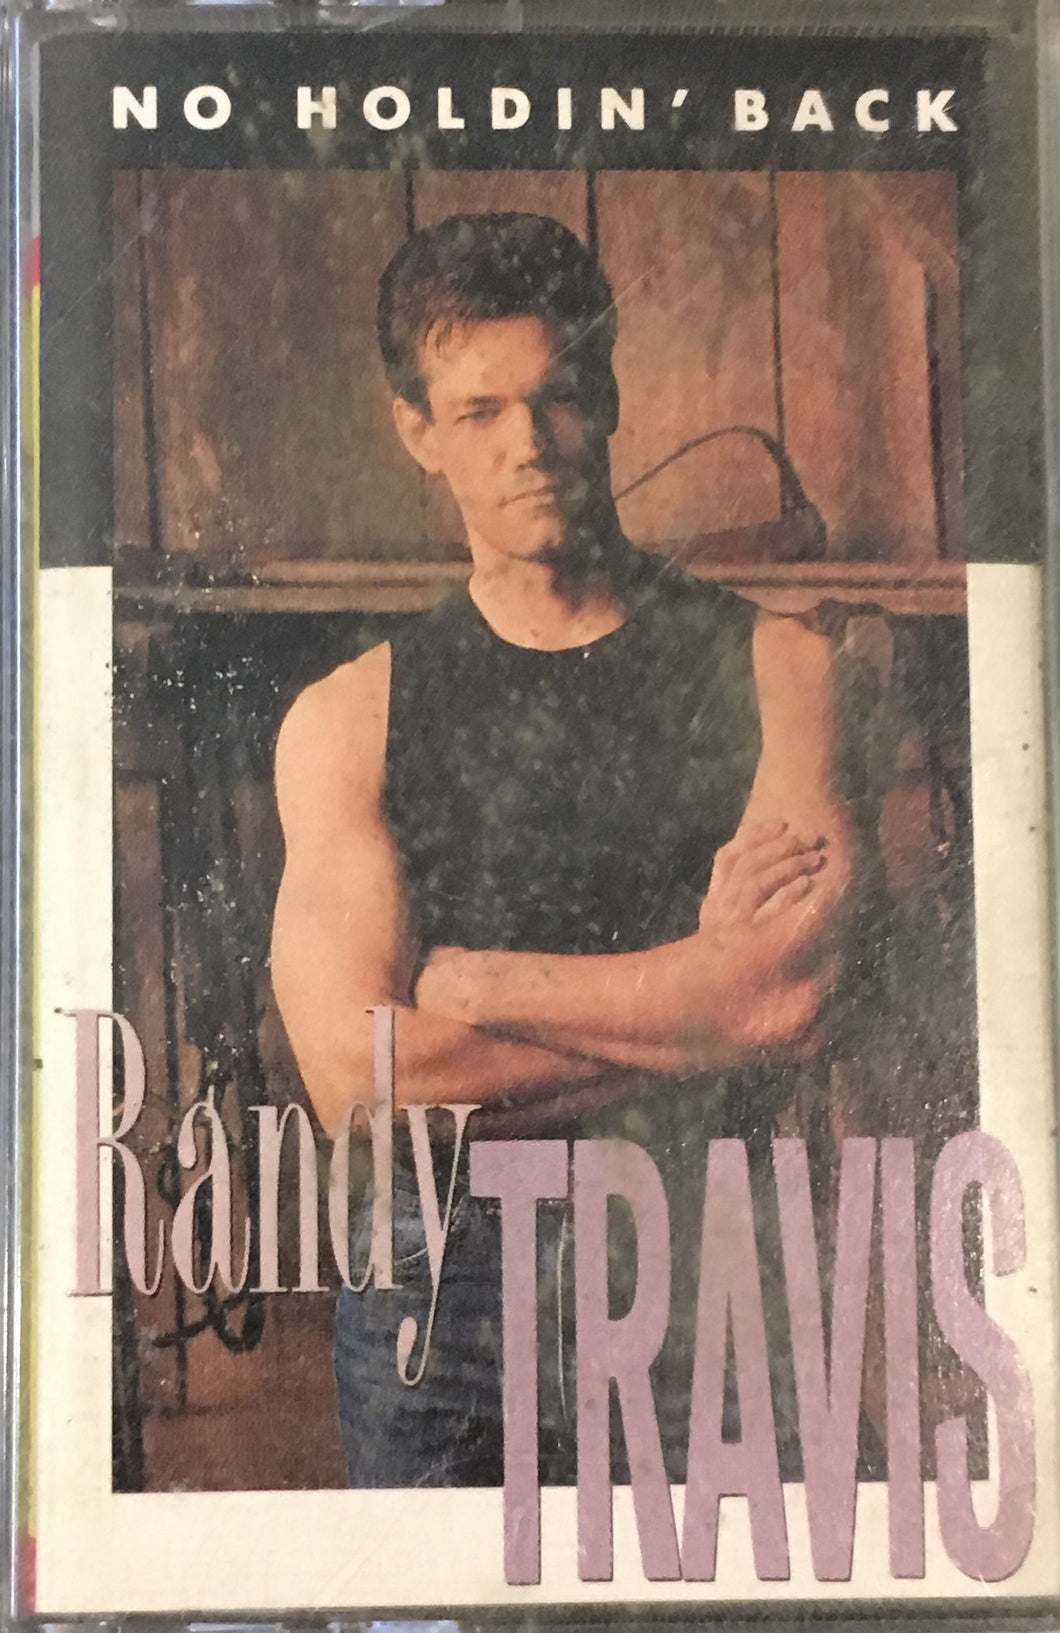 Randy Travis No Holdin' Back Cassette